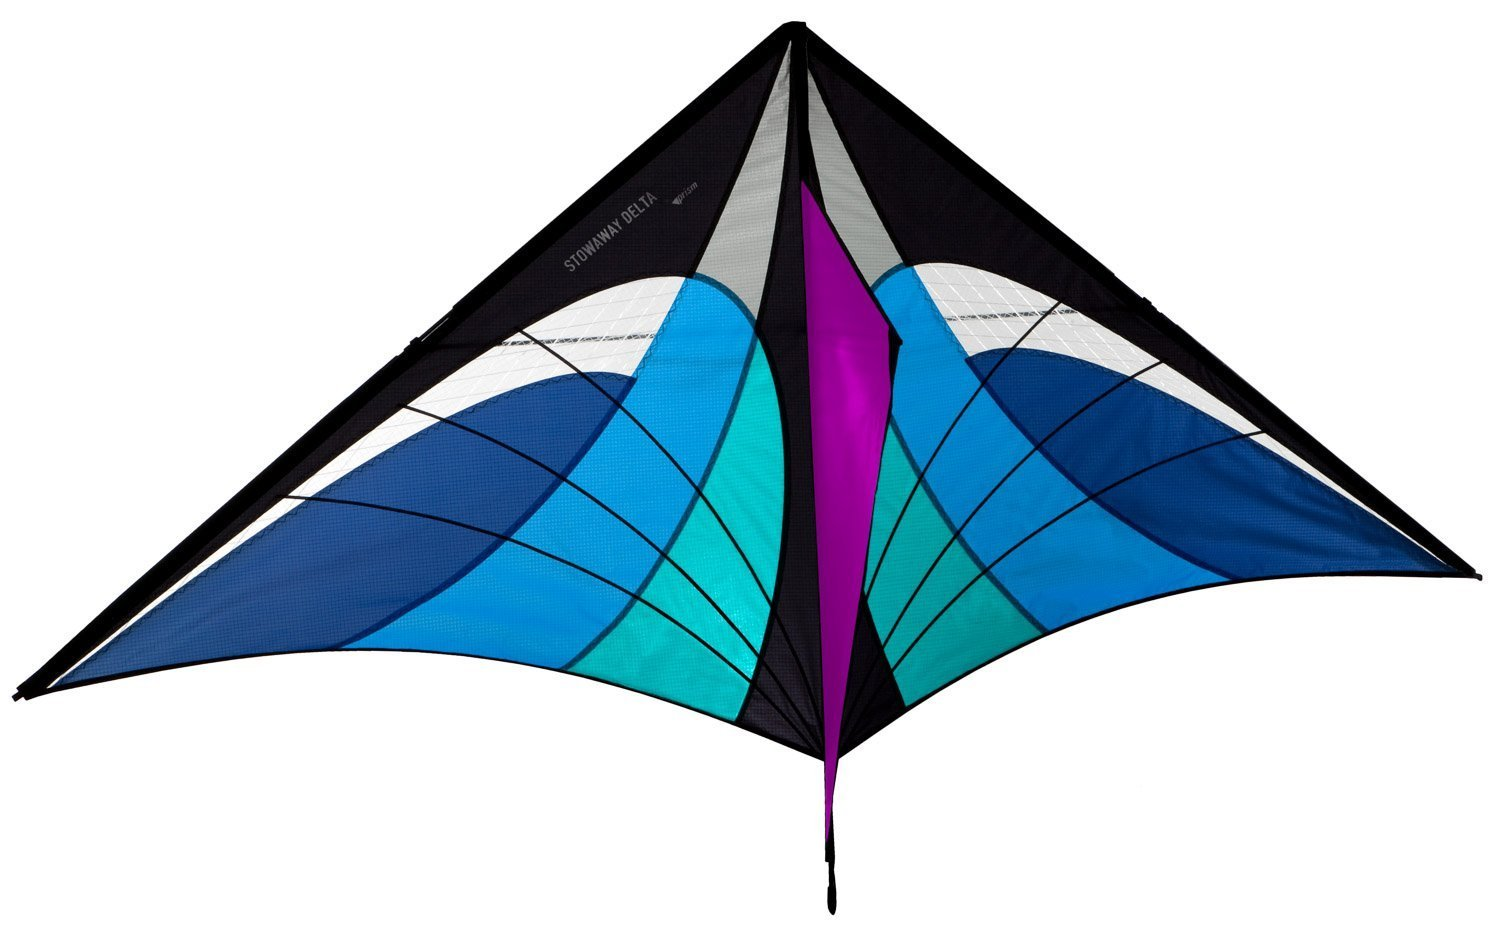 Prism Stowaway Delta Kite (Ice) by Prism Kite Technology